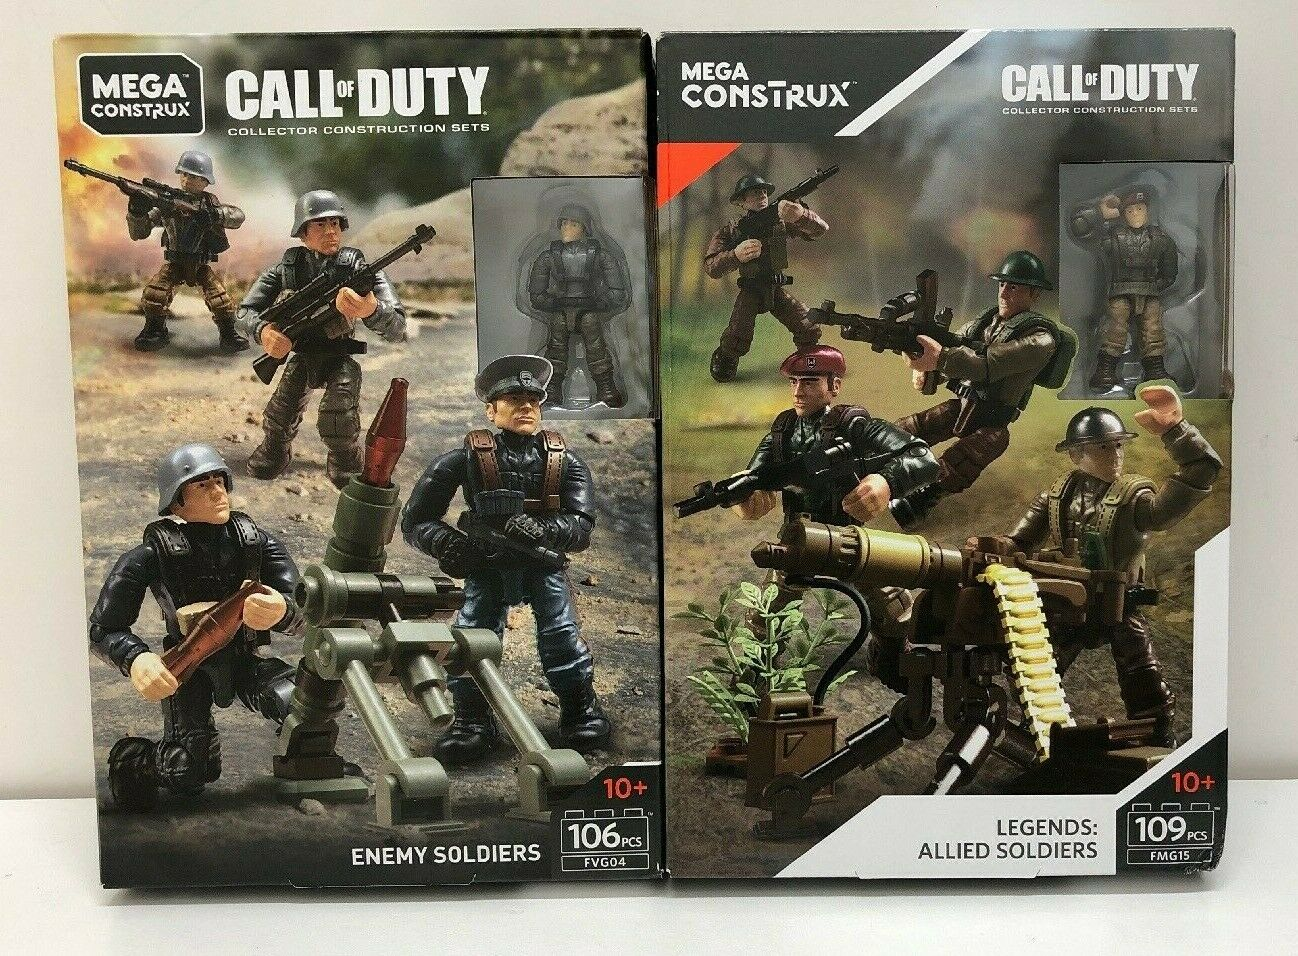 Call Of Duty Enemy Soldiers And Allied Soldiers FVG04 & FMG15